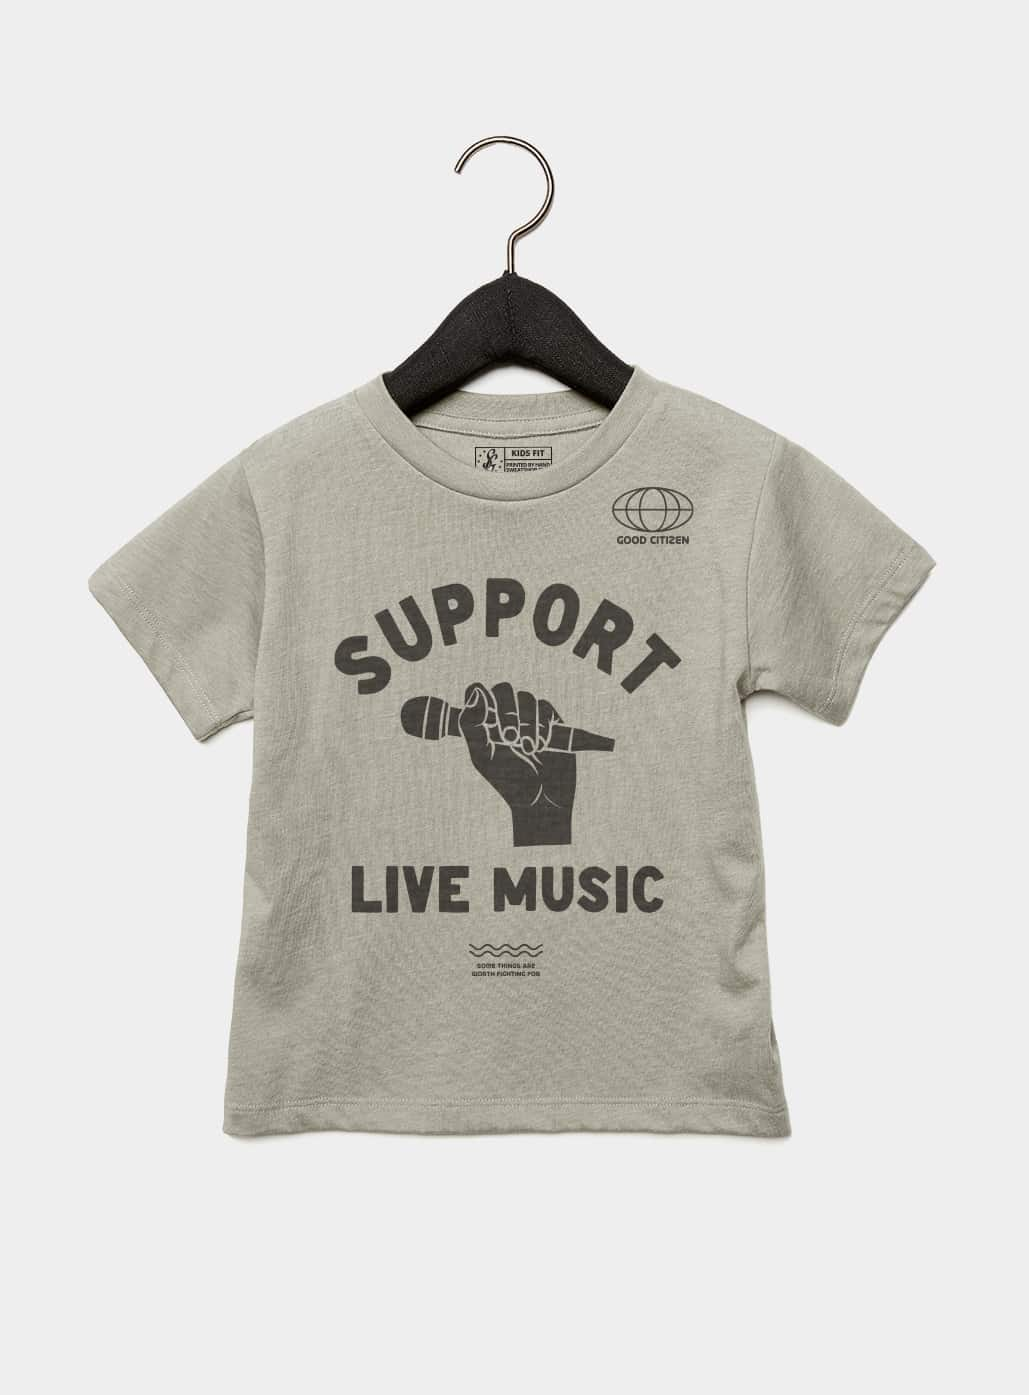 SOLIDARITY SERIES No. 4: Support Live Music Kids Tee